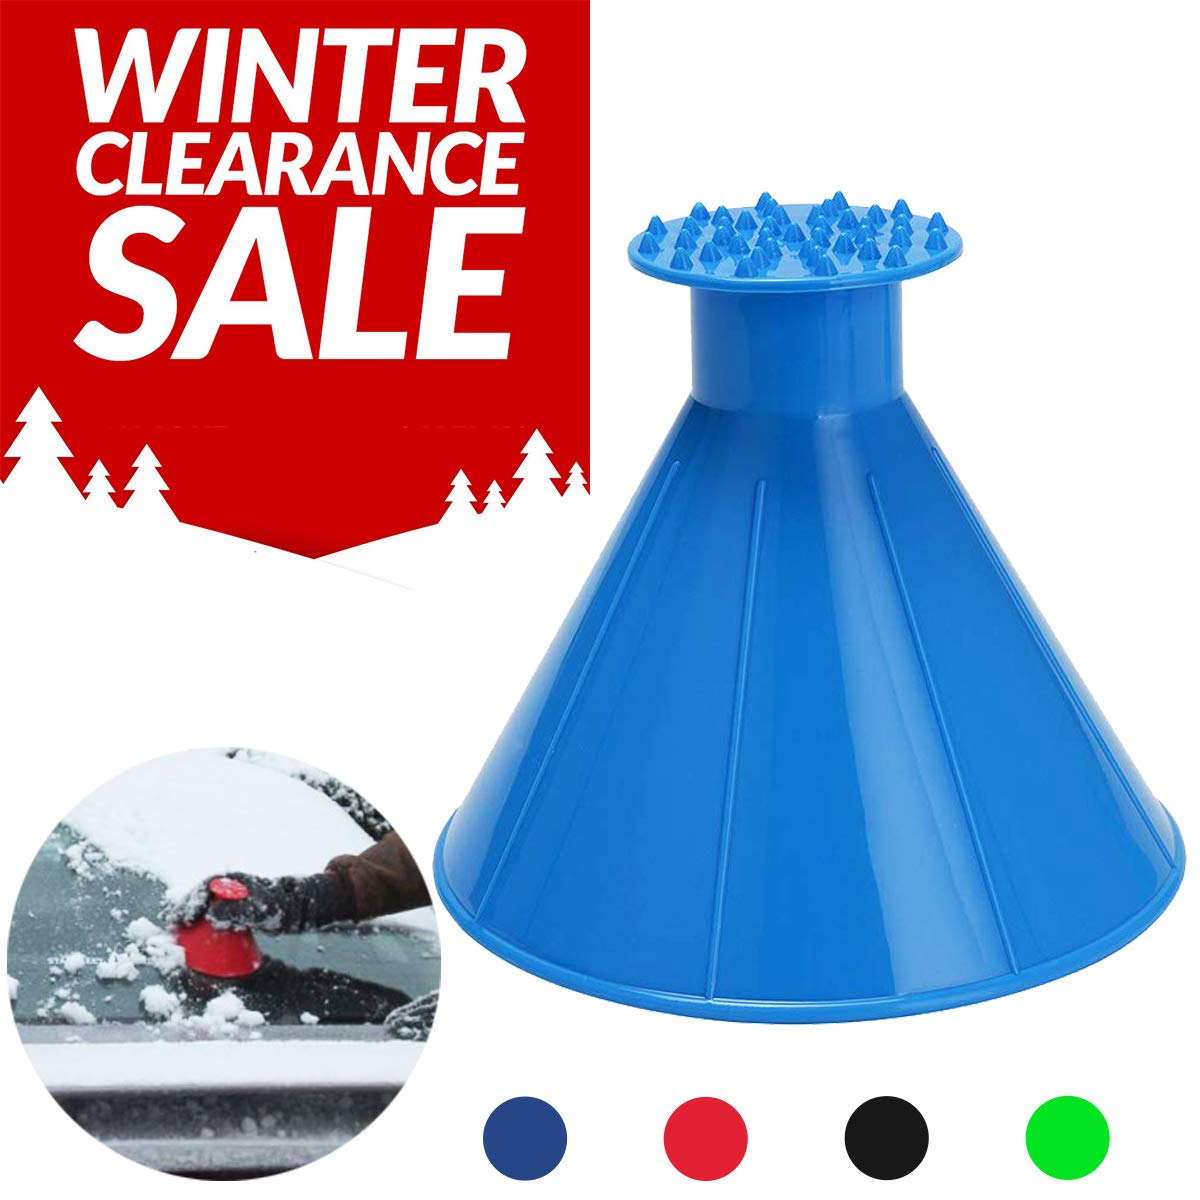 Funnel Scrape A Round Ice Scraper Cone Car Windshield Snow Scraper Shaped Windshield Snow Funnel Shovel Tool Will Scrape Pesky Frost and Ice from Windscreens and Side Windows with Ease (Blue) Shipping By FBA (Spring Promotion Only 3 Days)